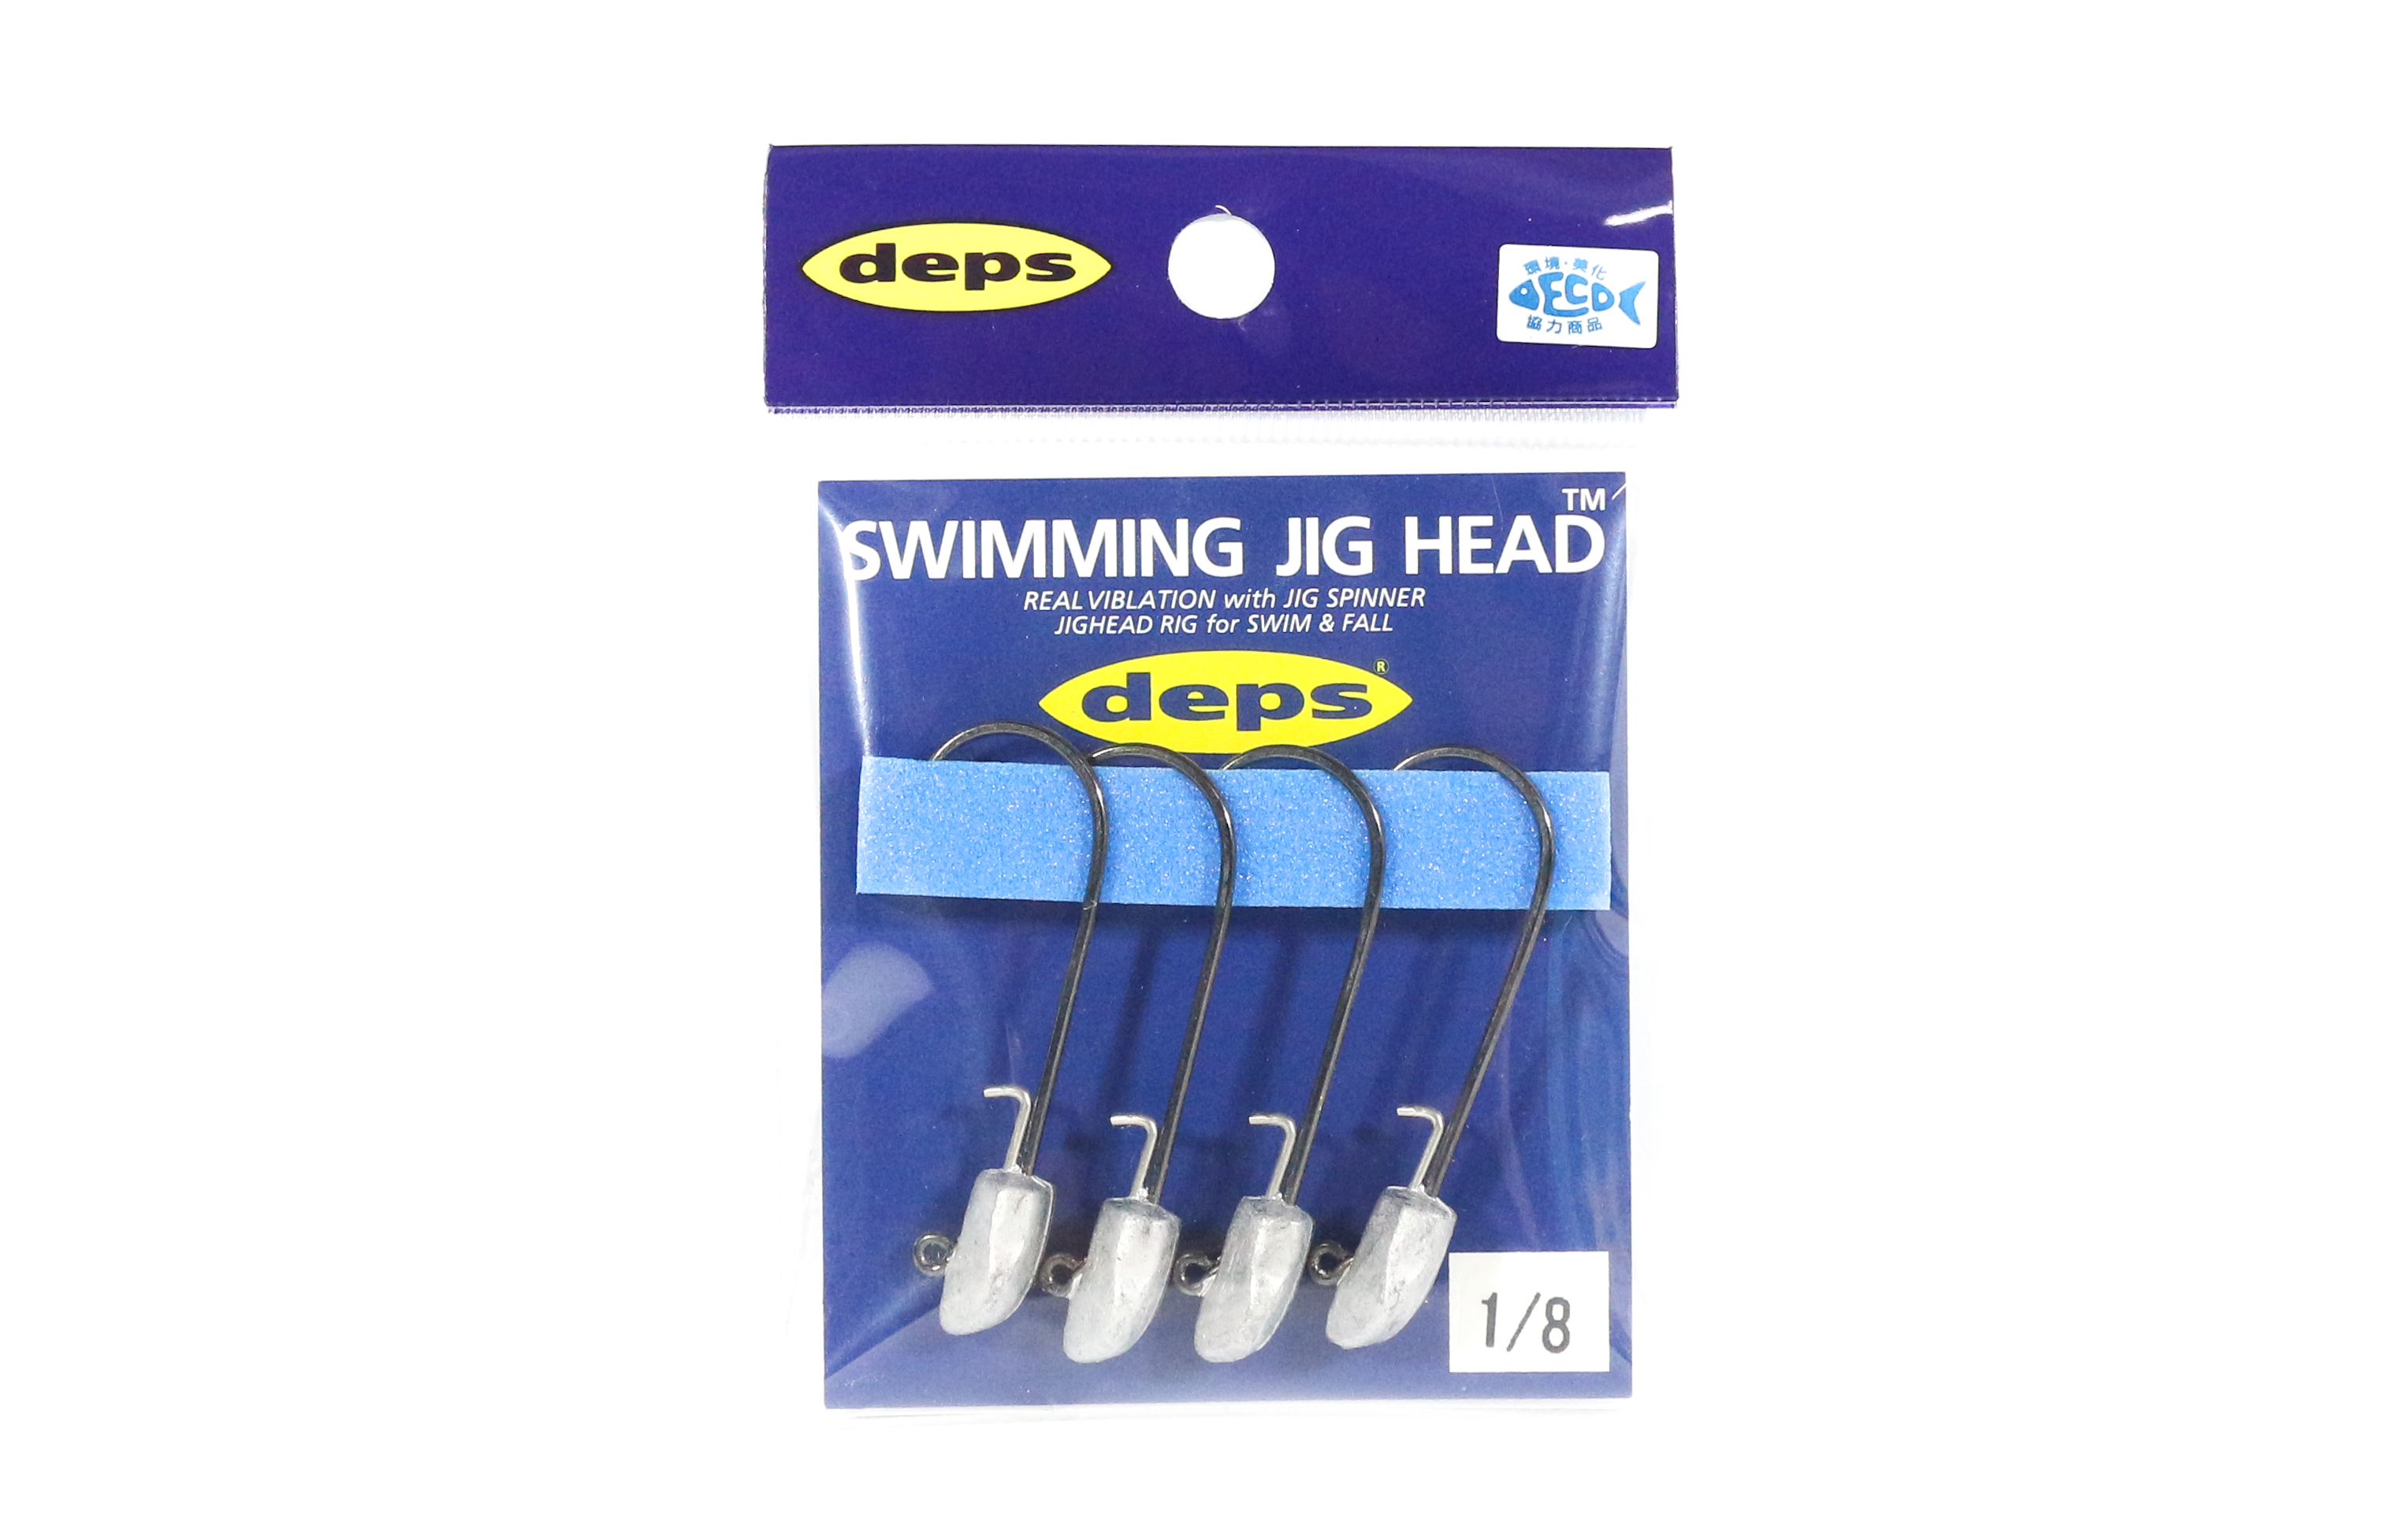 Deps Swimming Jighead 1/8 oz Size 3/0 , 4 piece per pack (0022)